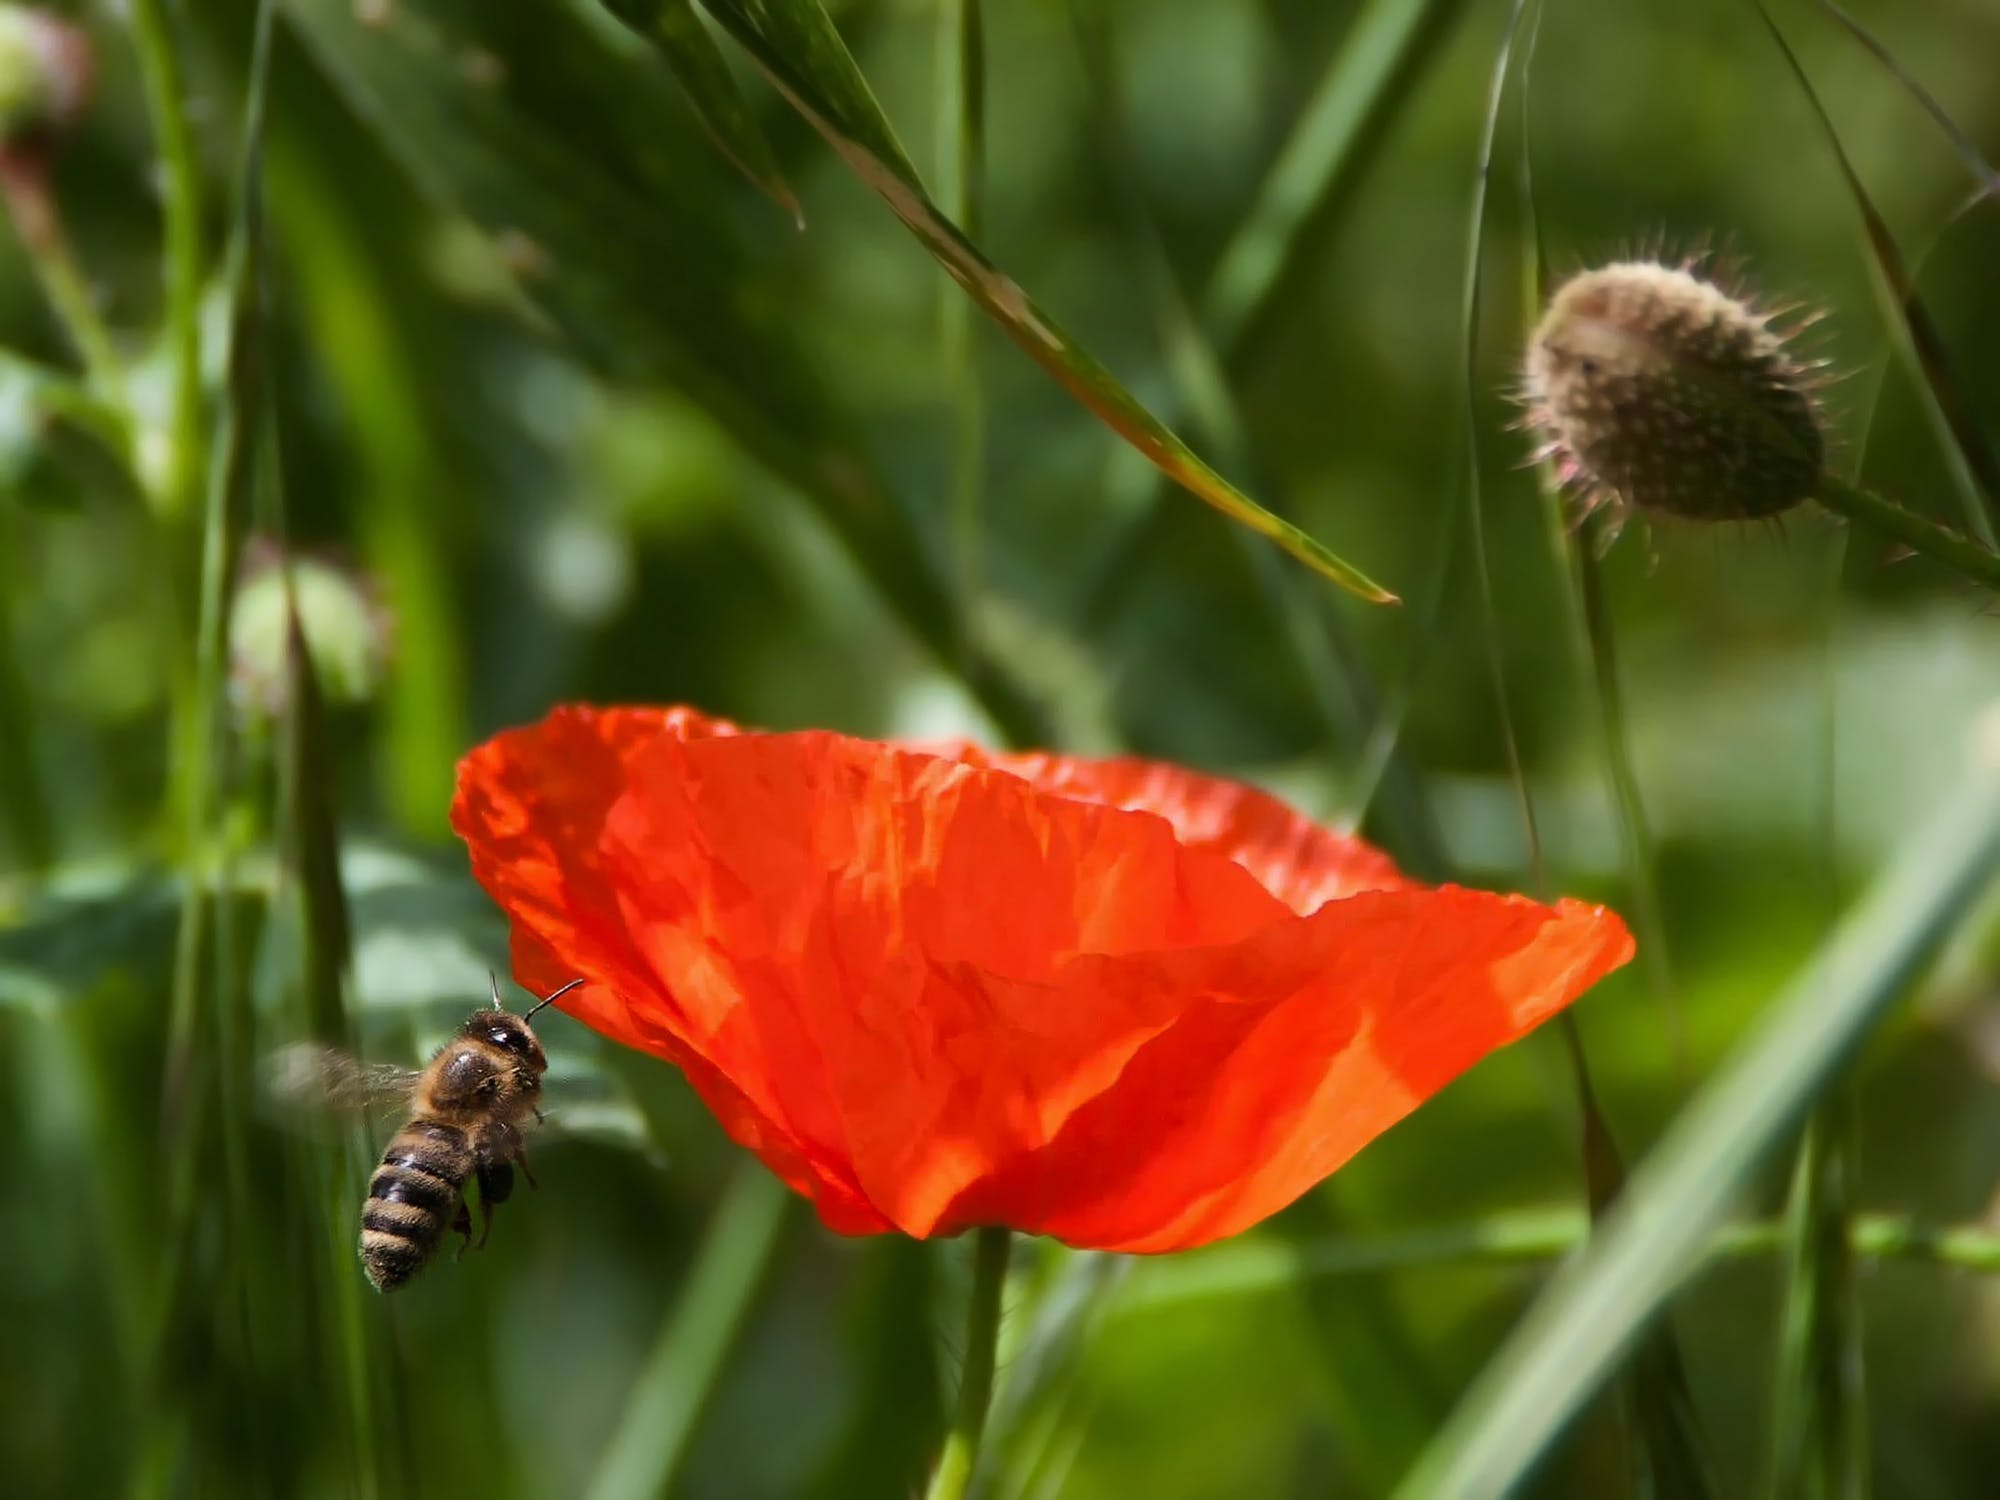 Brown and Black Bee Flying Near Orange Petaled Flower during Daytime